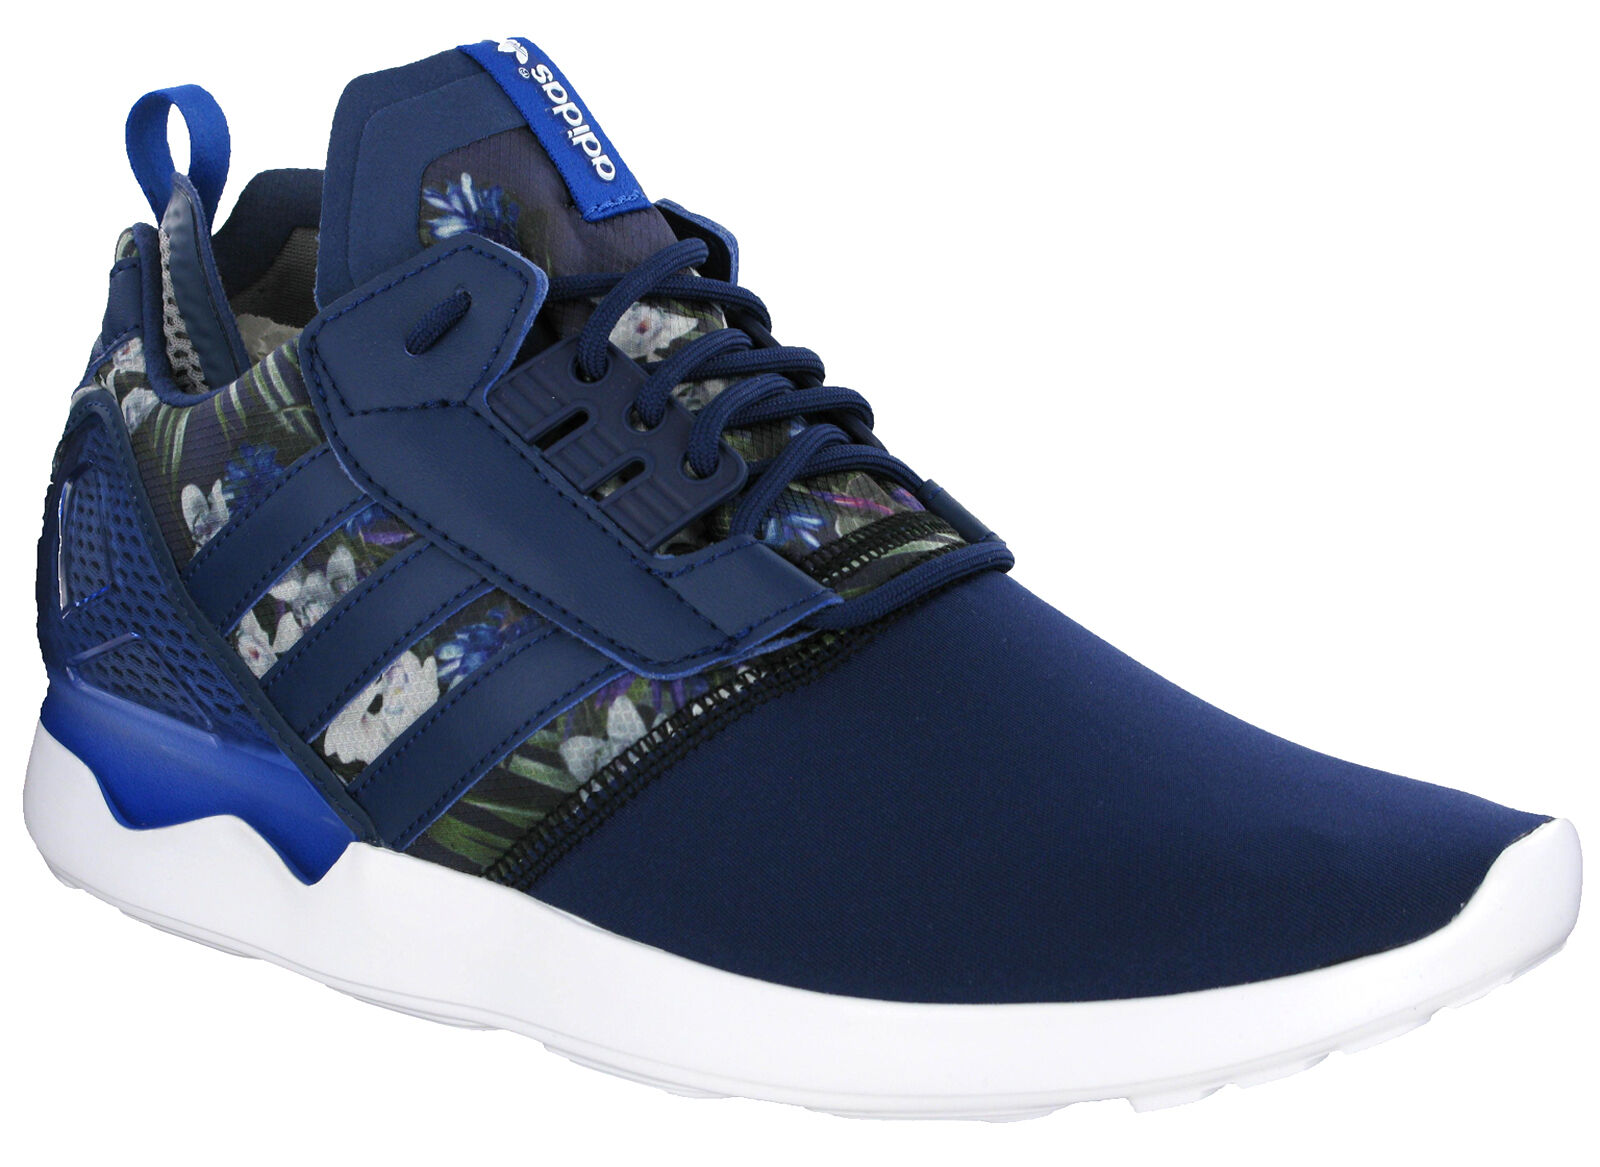 Adidas ZX 8000 Boost Running Navy Flower  Uomo B24959 Cushioned Lace Up Trainers B24959 Uomo 351fd8